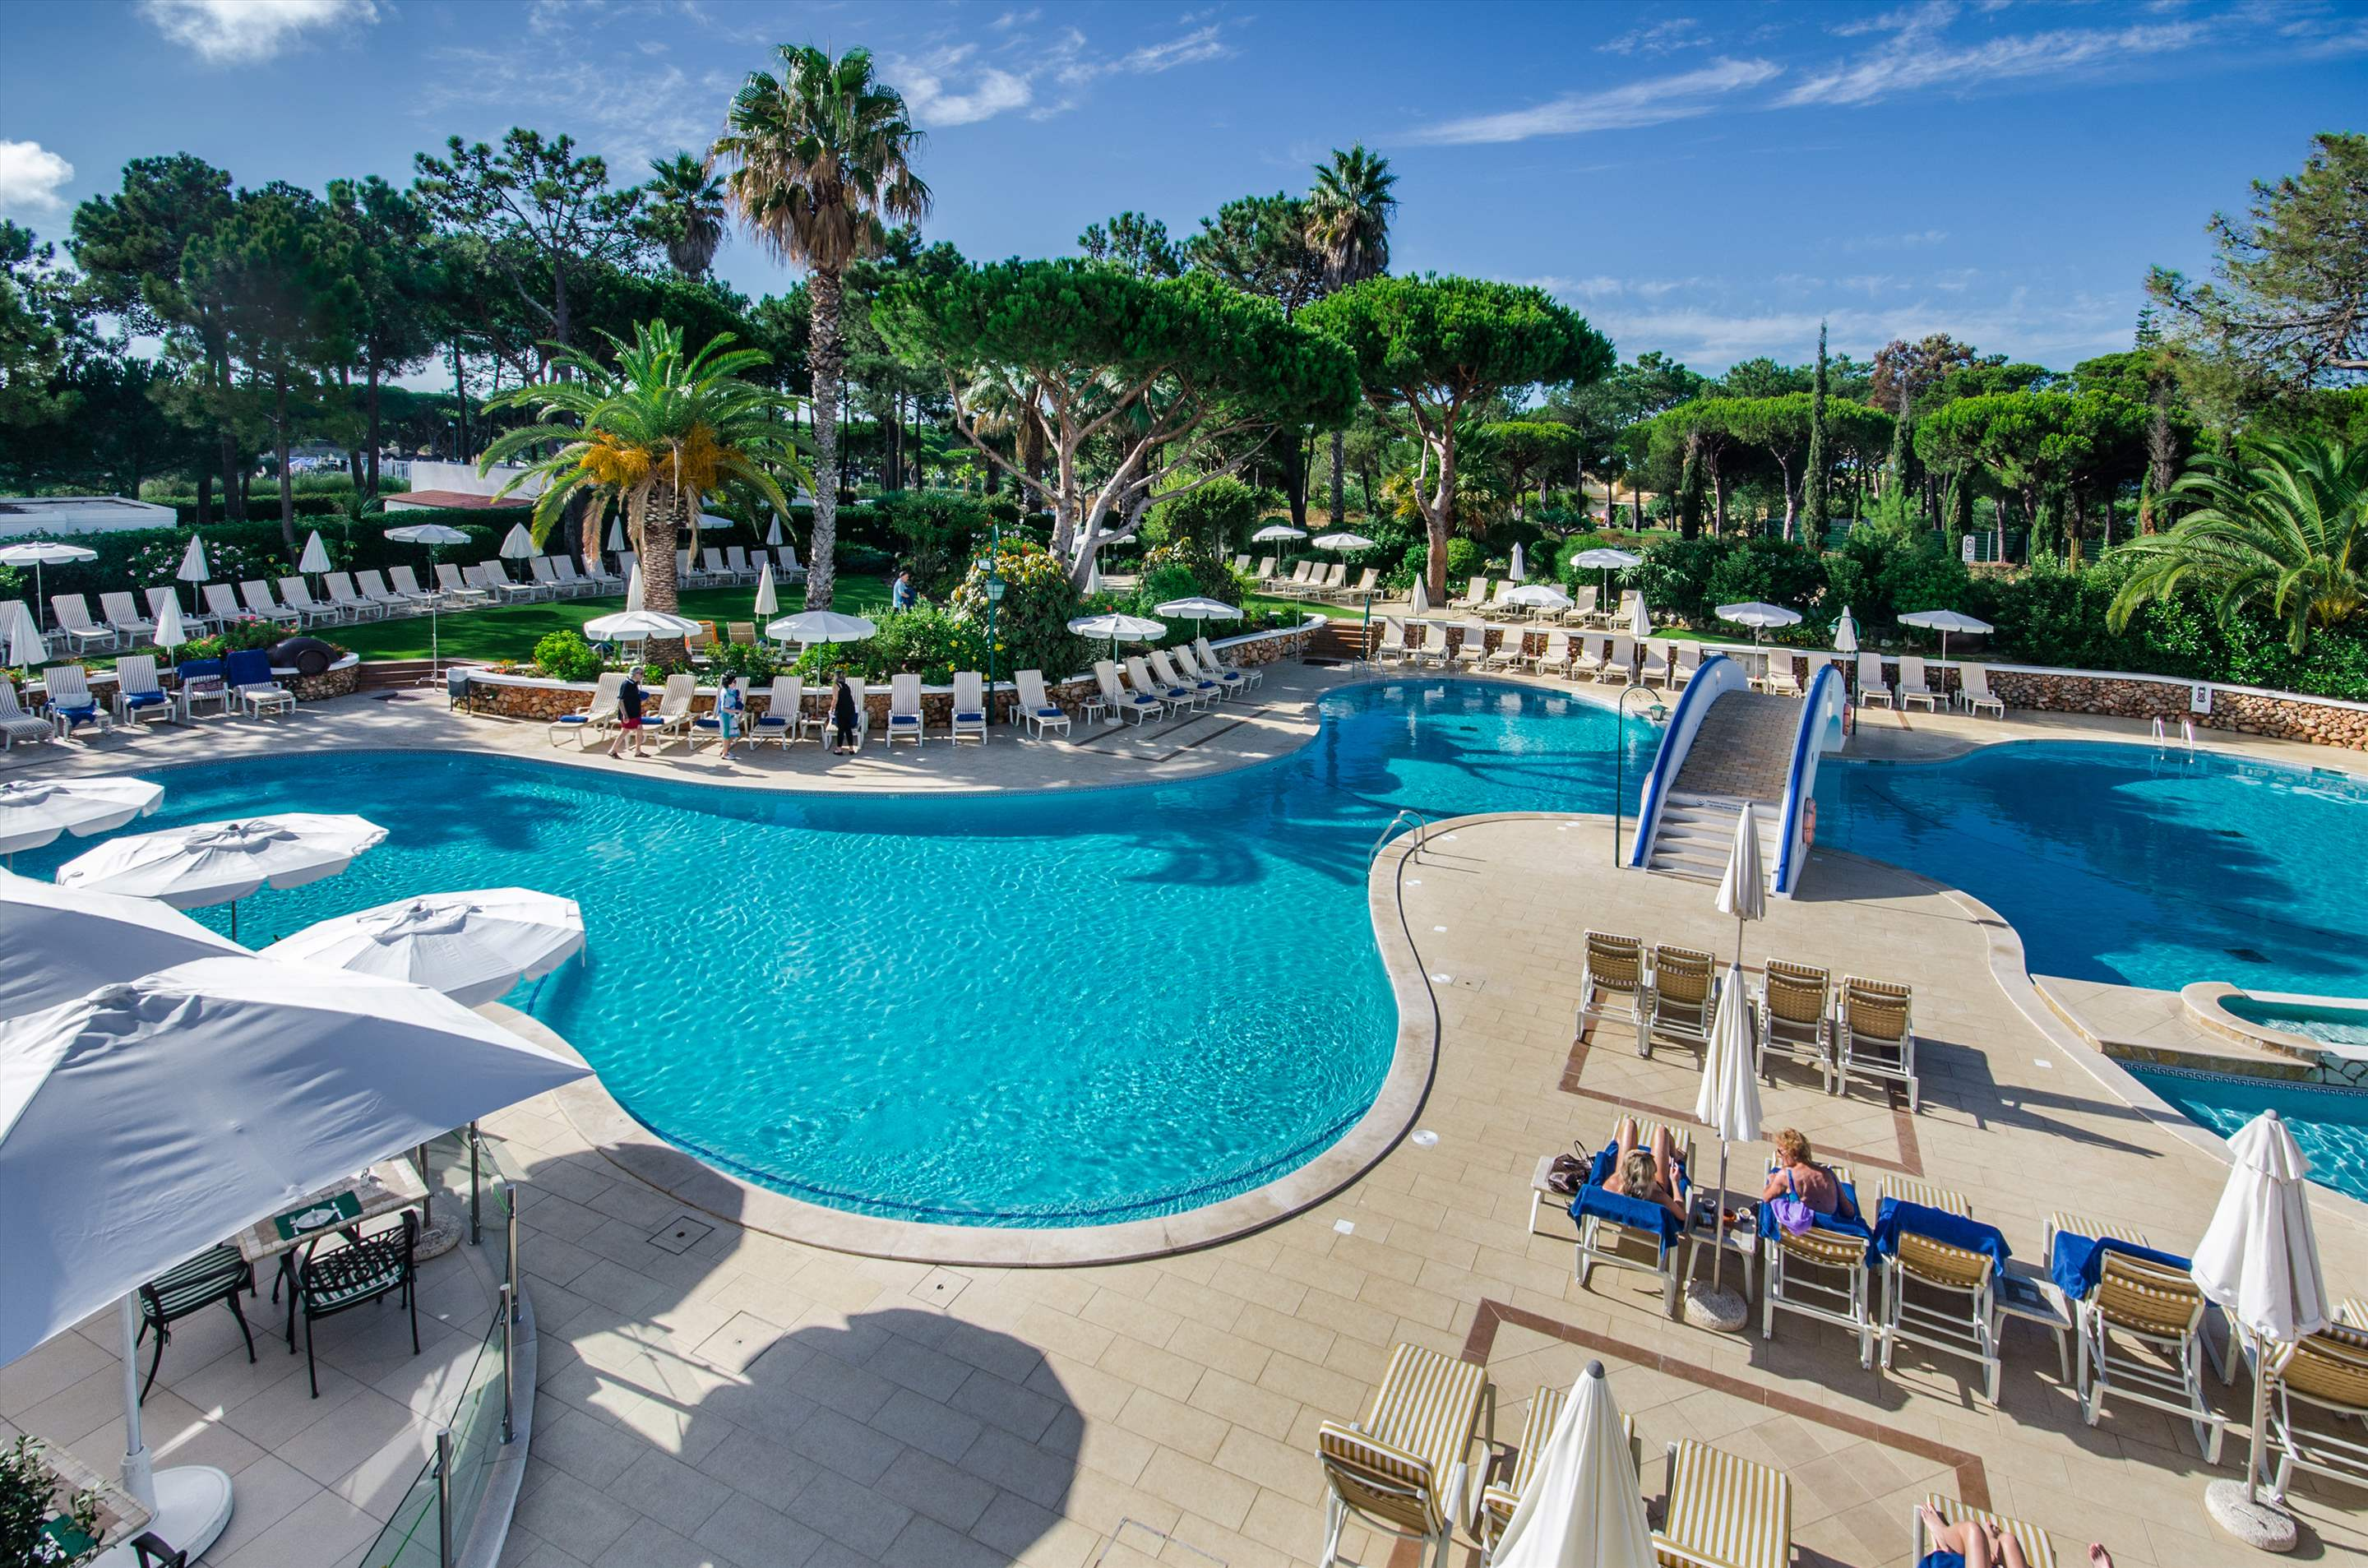 Four Seasons Country Club 2 bed, Superior - Saturday Arrival, 2 bedroom apartment in Four Seasons Country Club, Algarve Photo #16